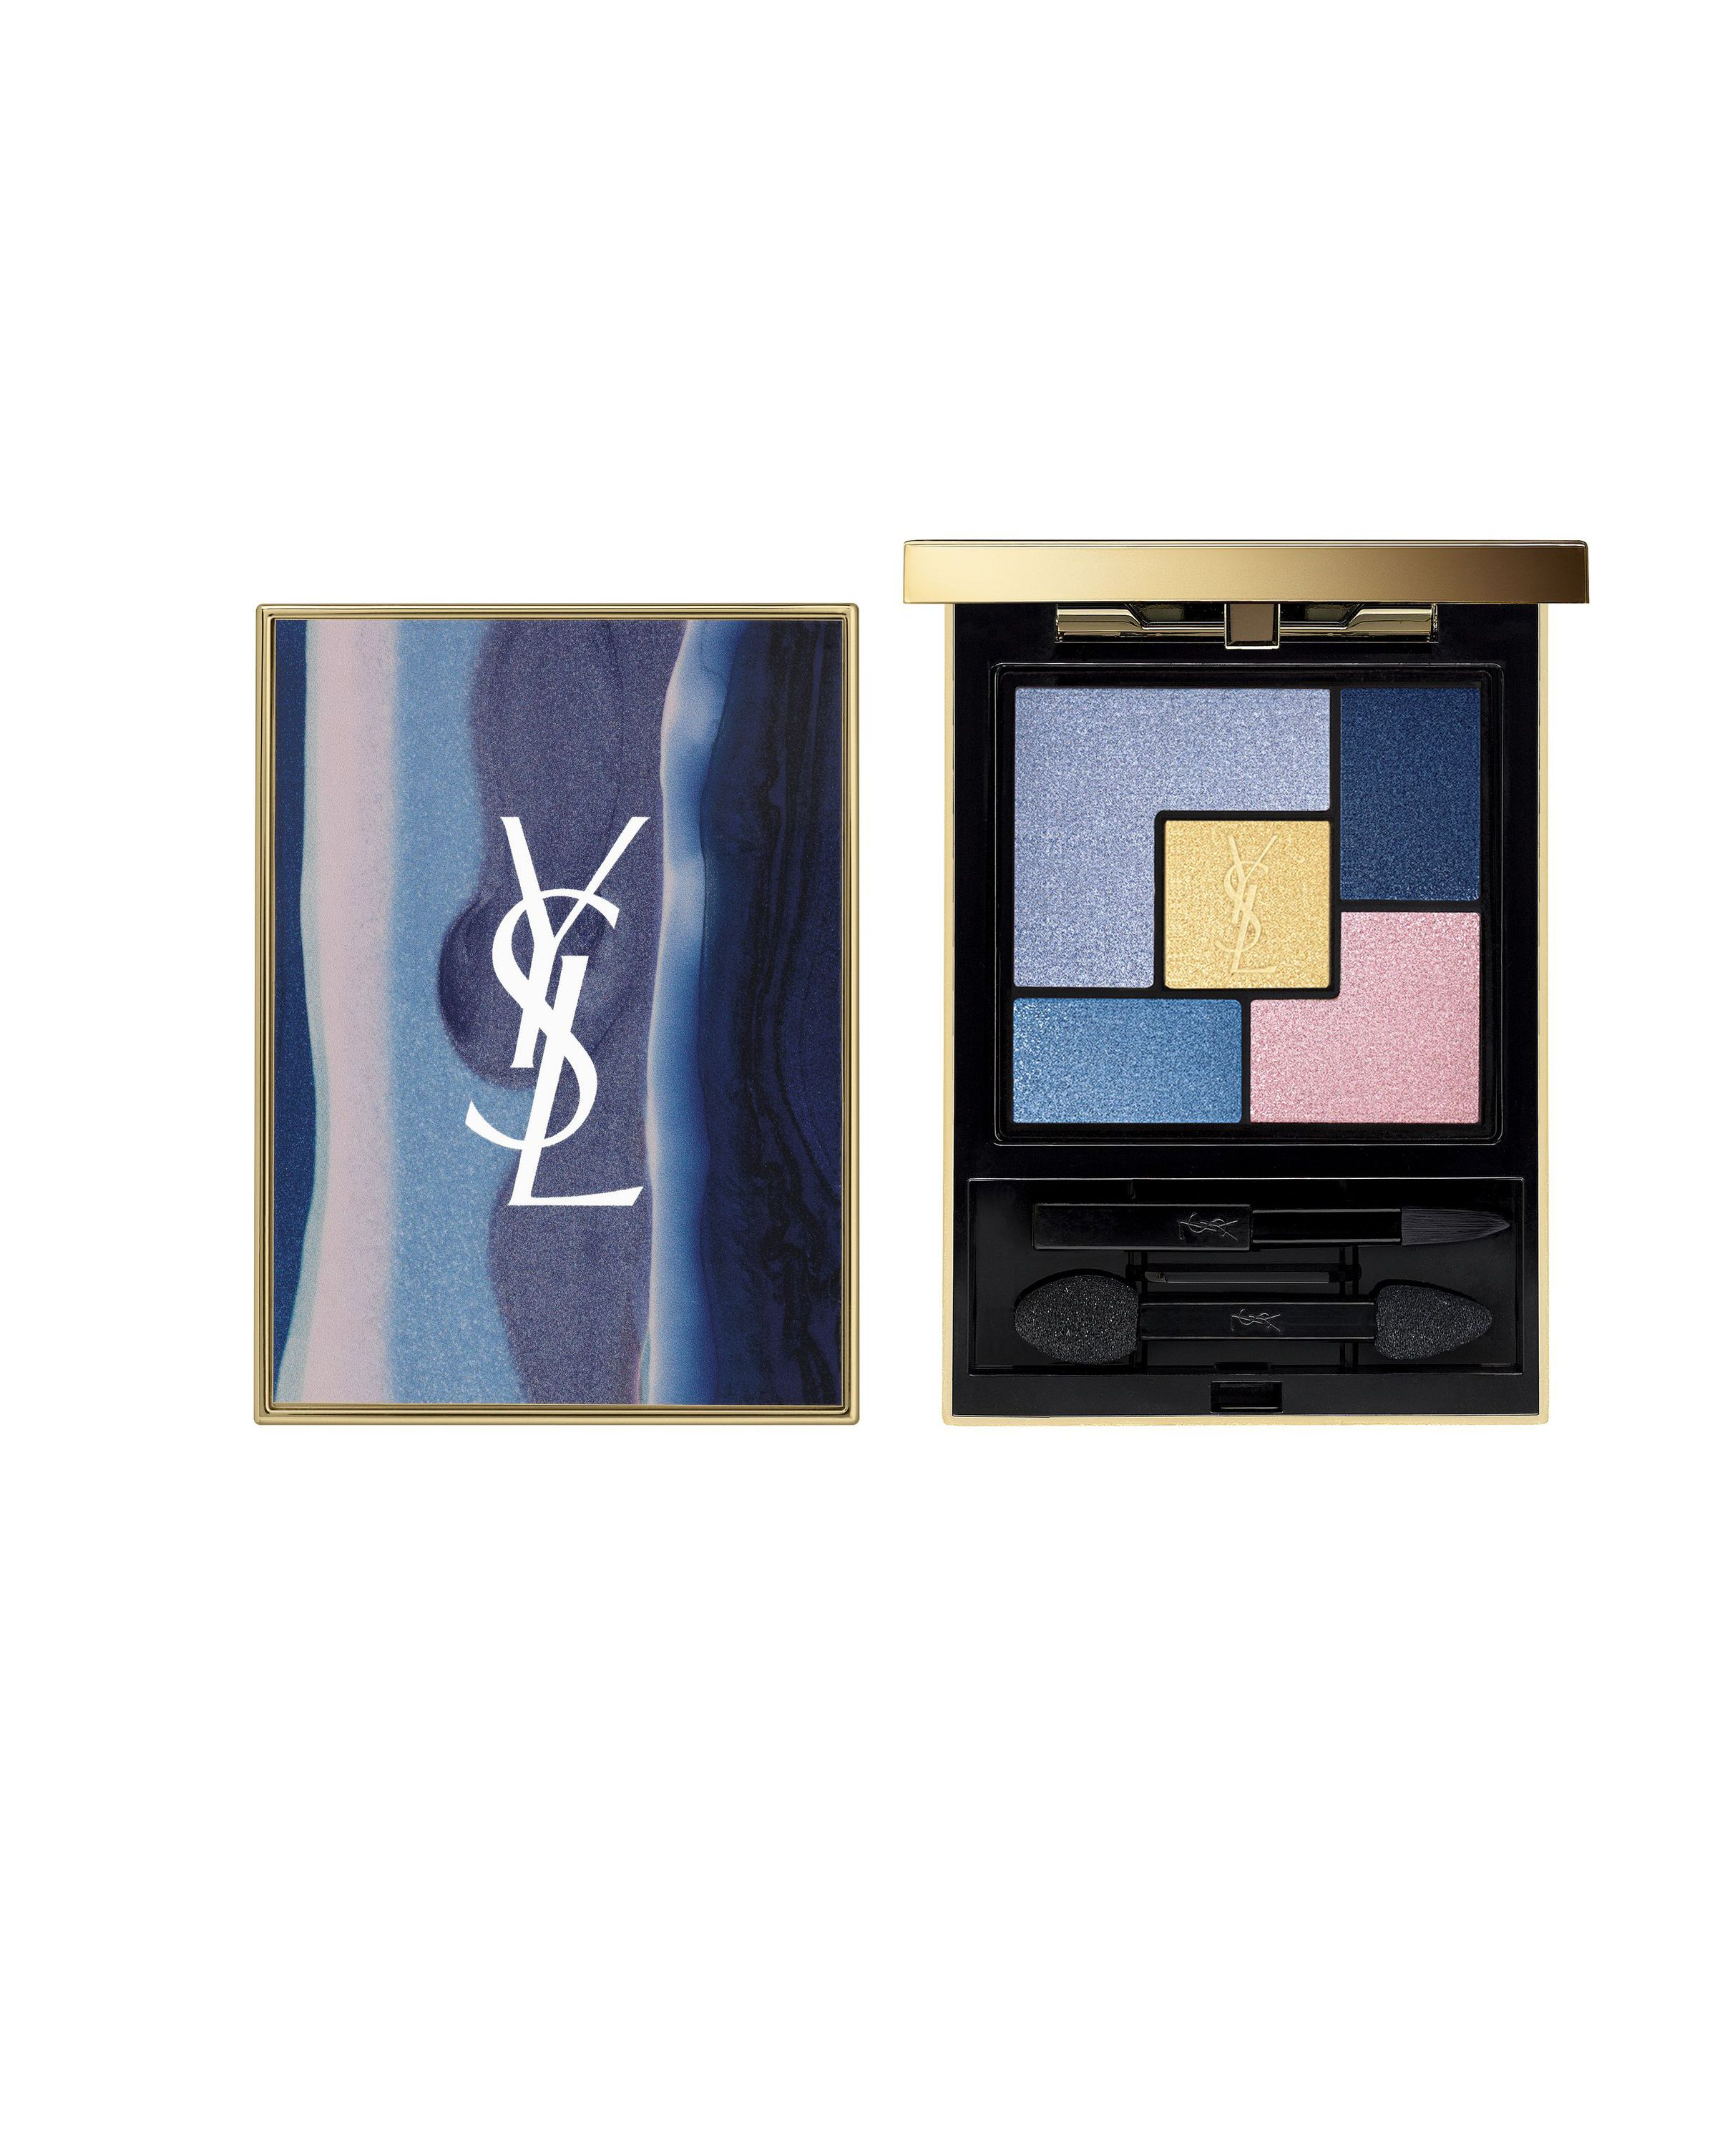 YSL Pop Illusion Palette